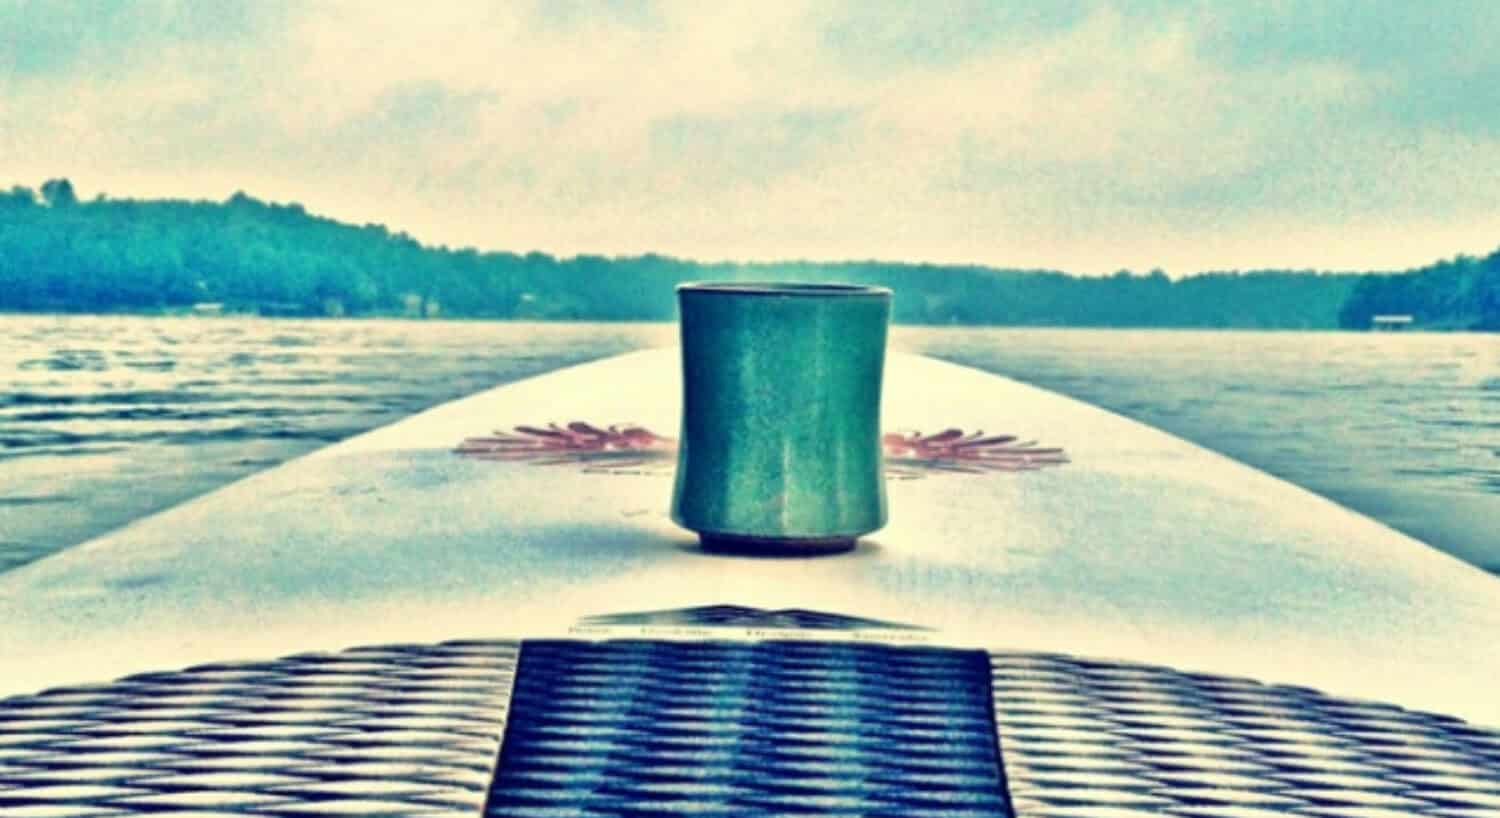 A blue coffee cup rests on the front of a paddleboard